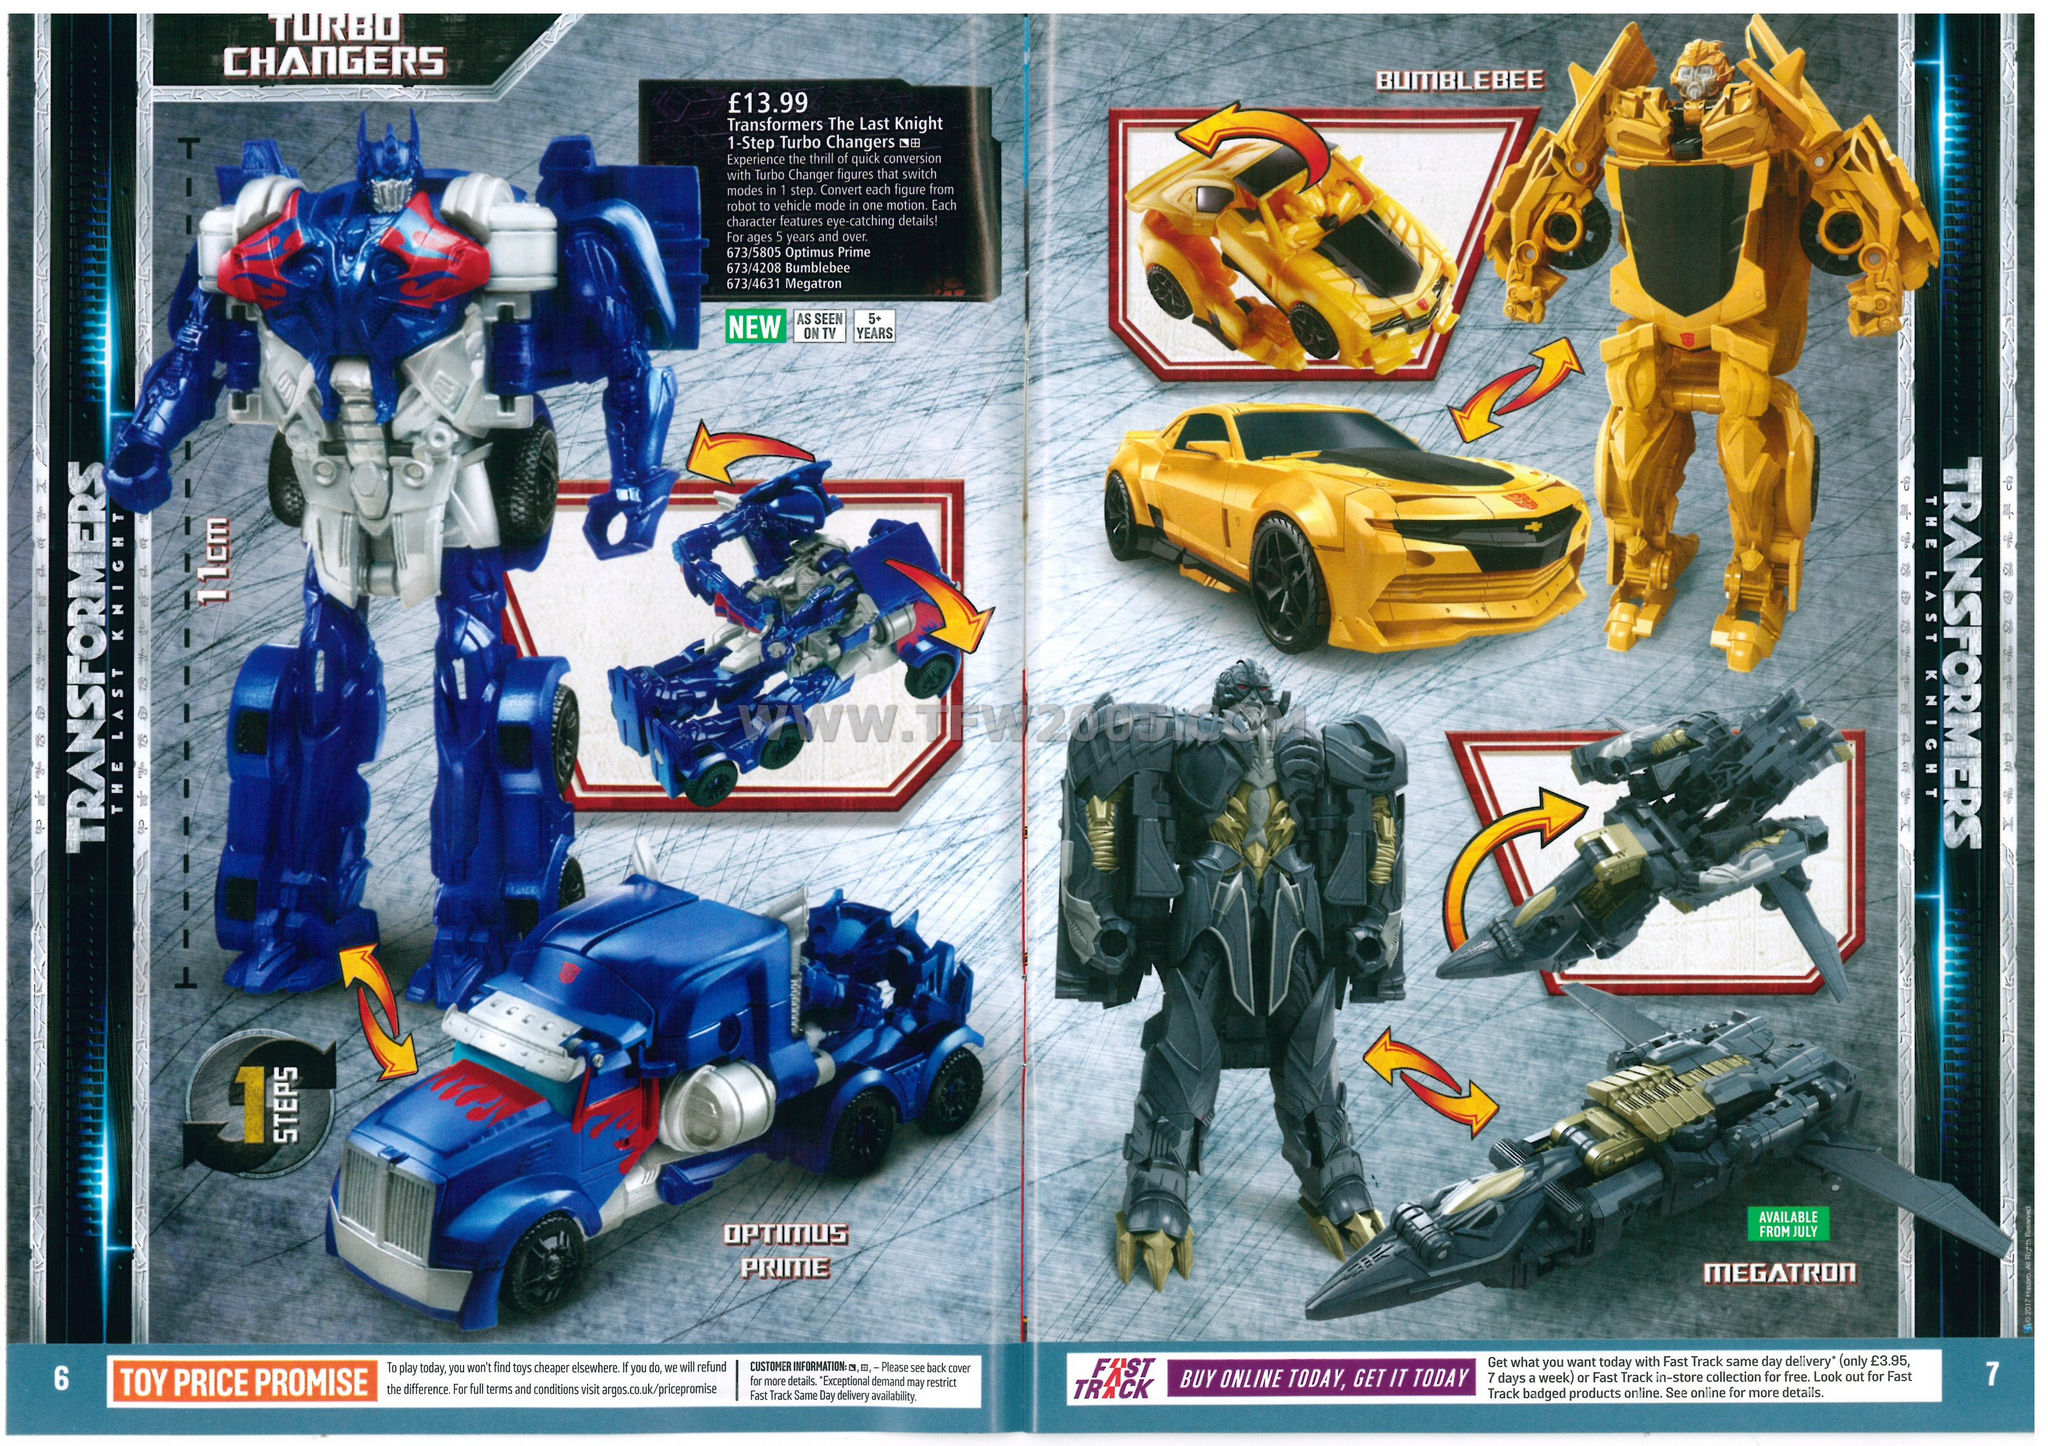 Transformers The Last Knight Argos Catalog Scans with High